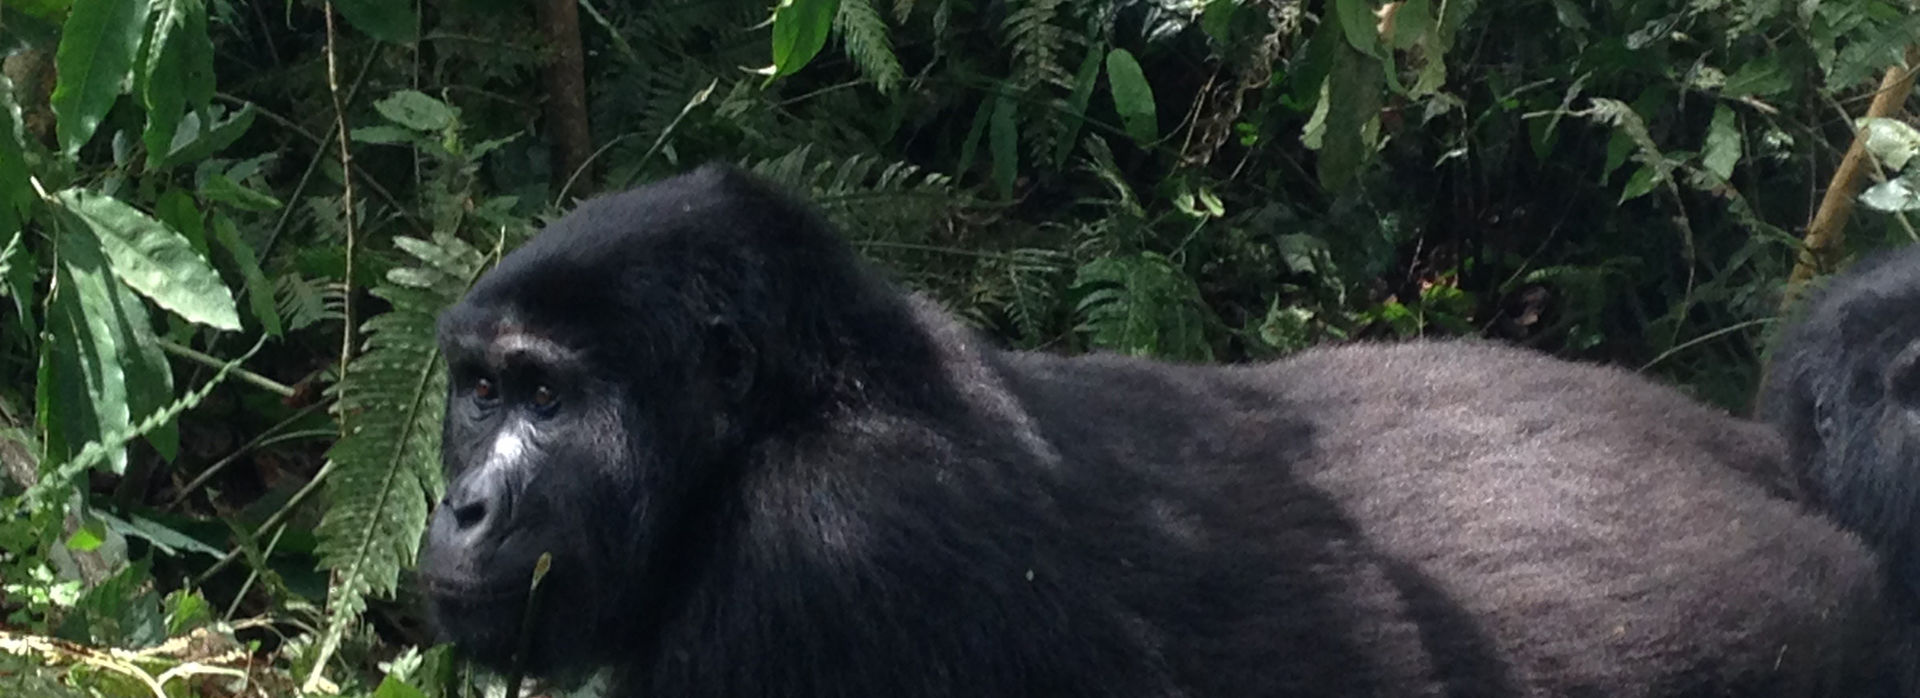 Meet the gorillas in Uganda